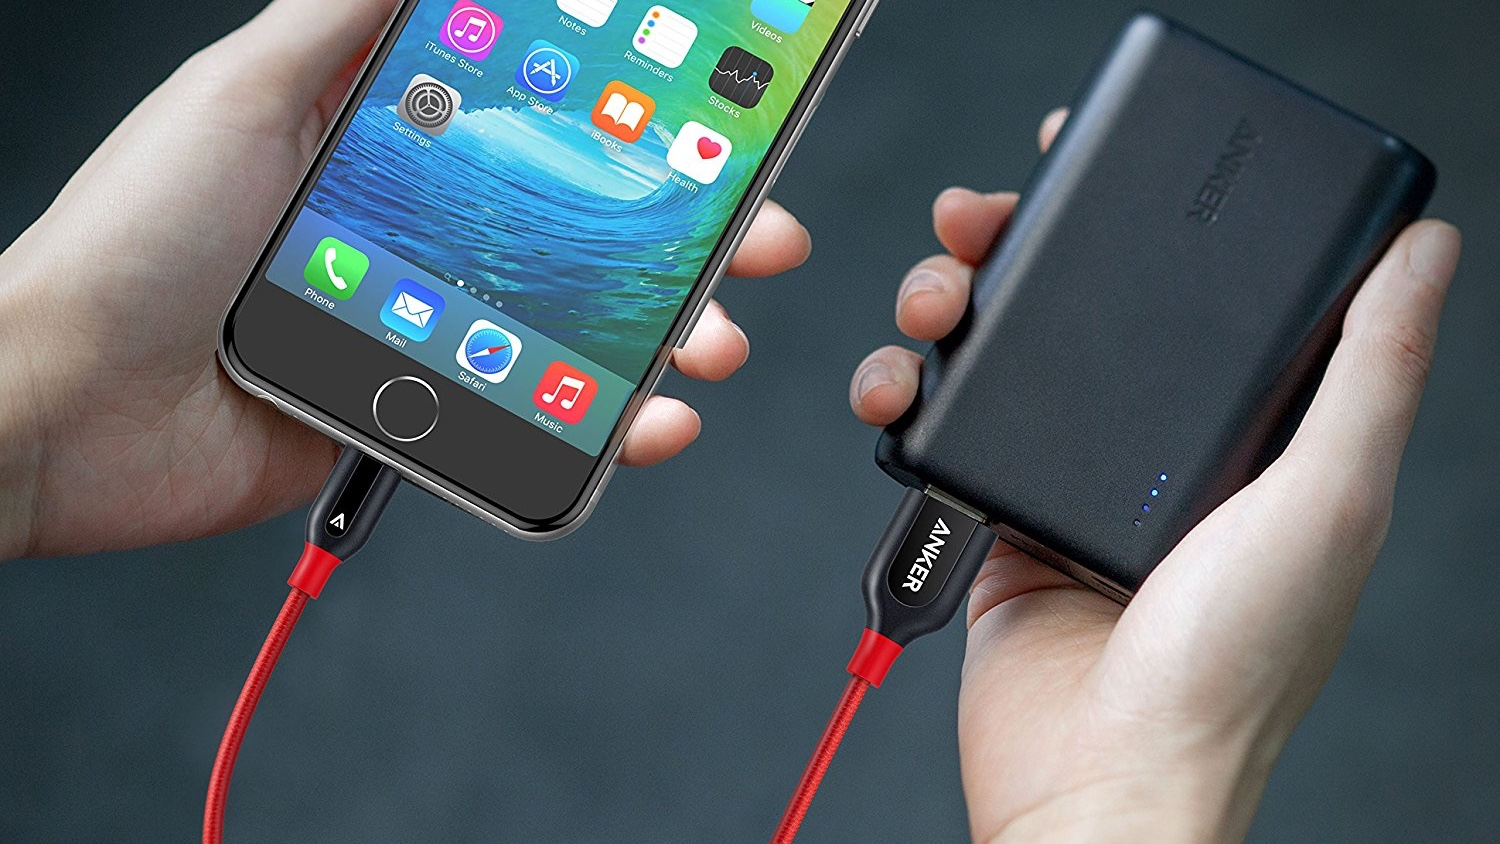 anker-lightning-cable-and-power-bank